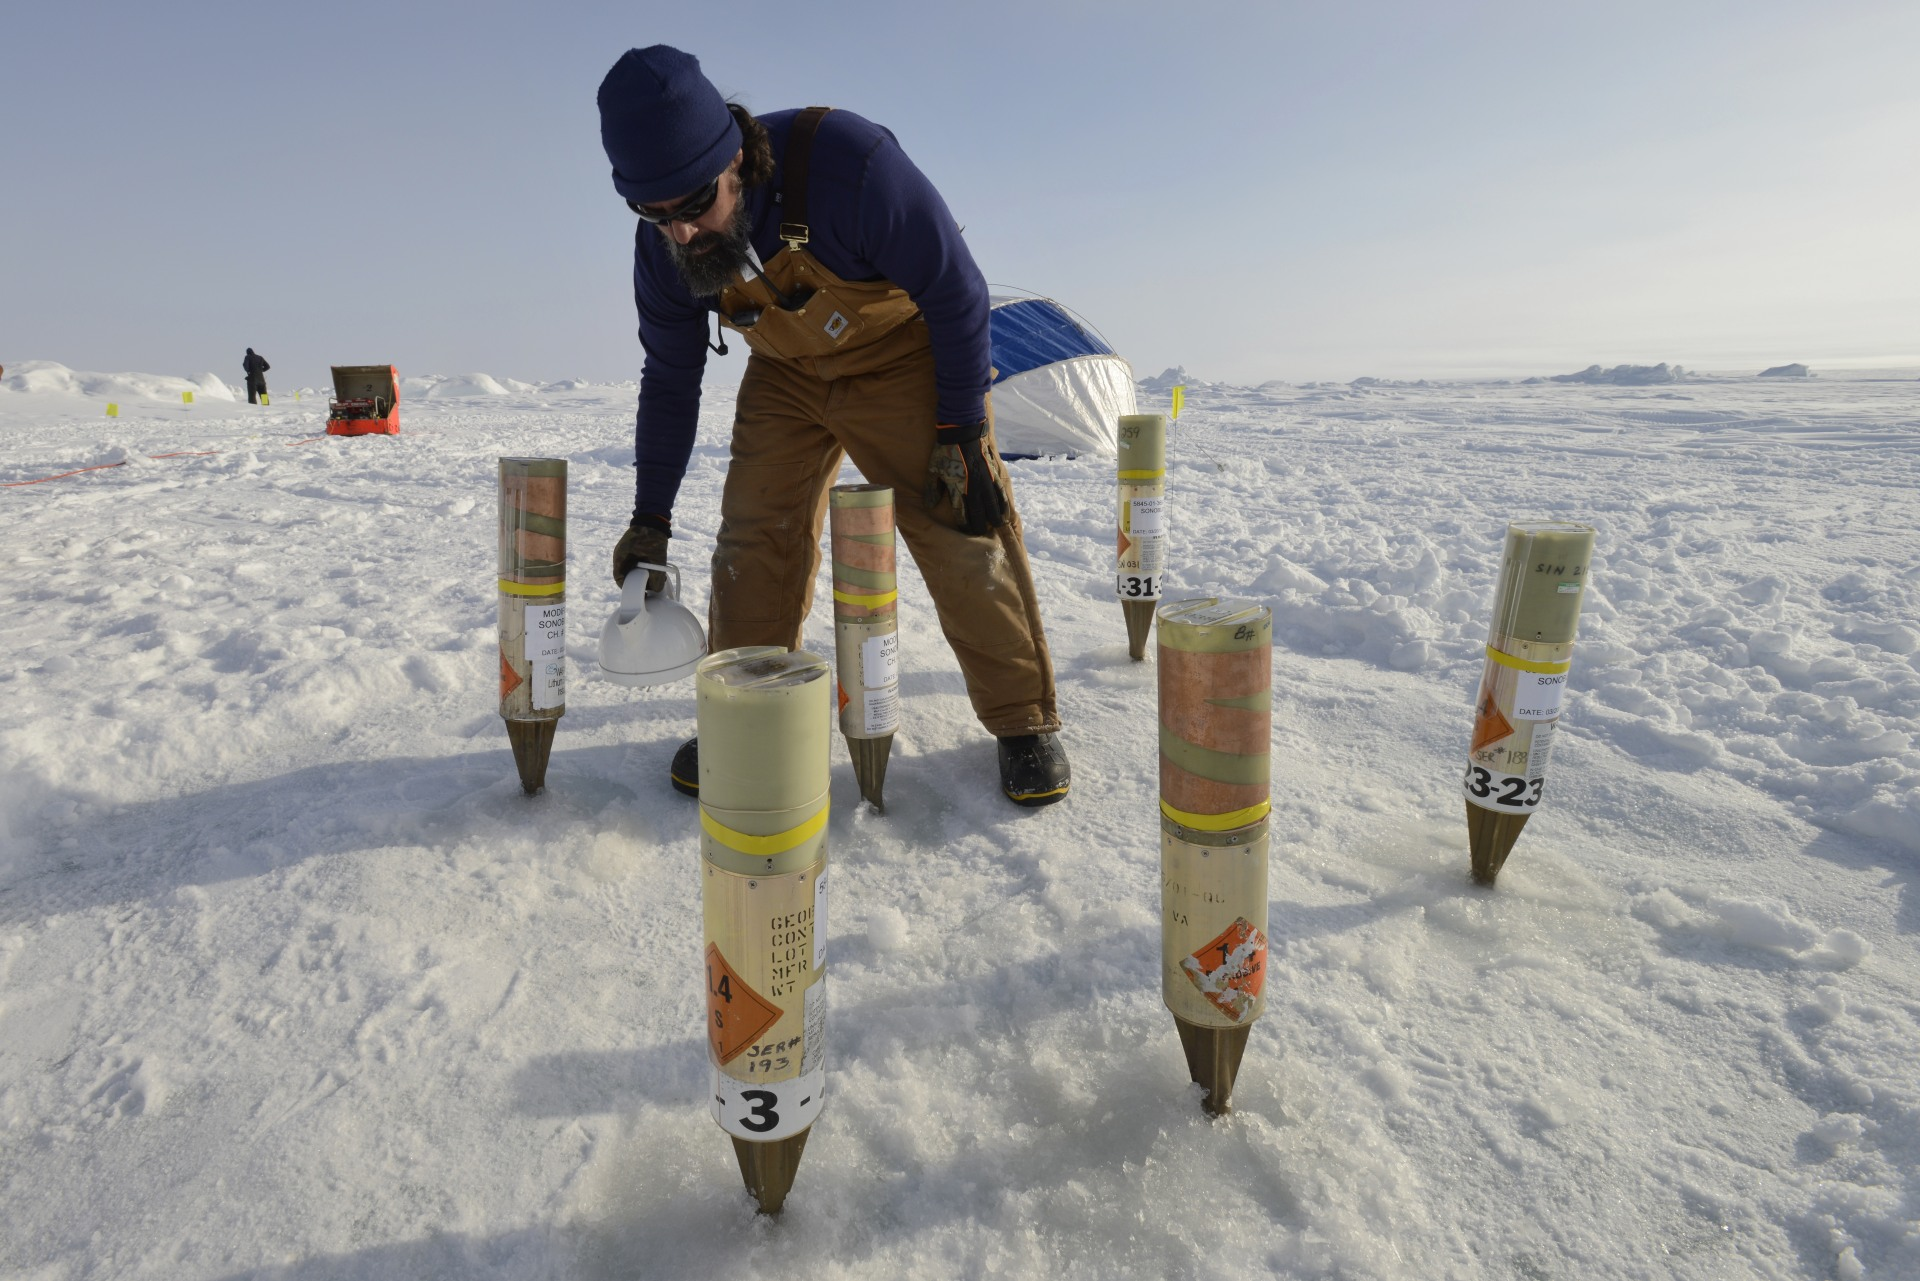 Watering a geobuoy garden. The buoys were inserted with the entire icepick embedded in the holes, then a slurry of ice and water was poured around the holes and allowed to freeze, coupling the geobuoys to the ice in a controlled manner.